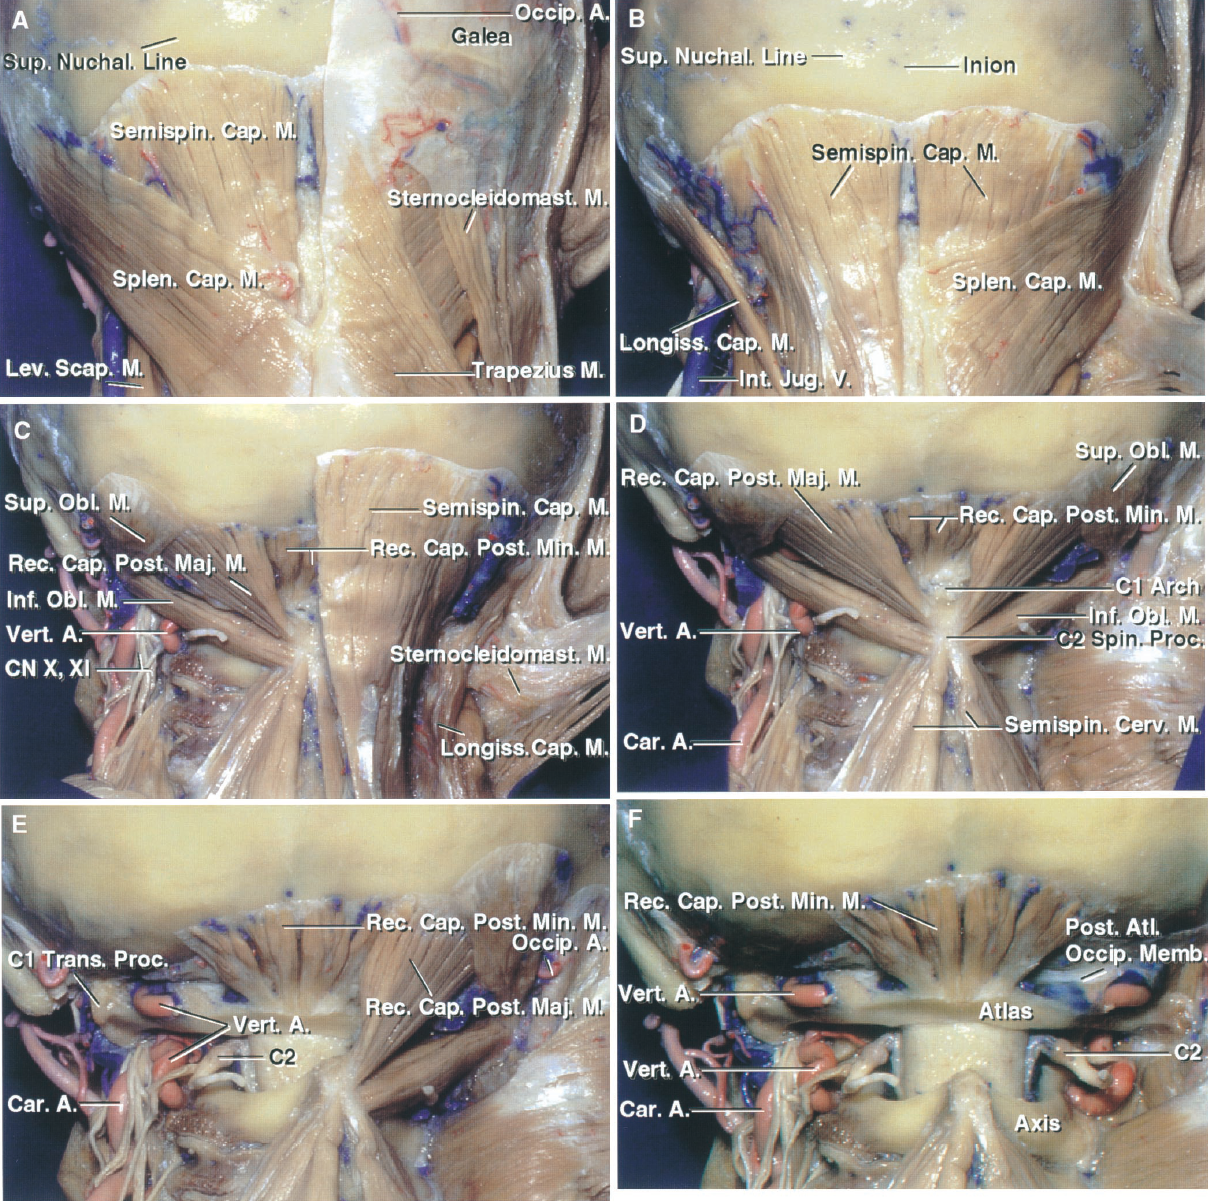 FIGURE 6.5. Suboccipital muscles. Stepwise dissection. A, the right trapezius and sternocleidomastoid have been preserved. The left trapezius and sternocleidomastoid have been reflected along with the galea aponeurotica to expose the underlying semispinalis capitis, splenius capitis, and levator scapulae. B, the right sternocleidomastoid and trapezius have been reflected to expose the splenius capitis. The left splenius capitis has been removed to expose the underlying semispinalis and longissimus capitis. C, the right splenius capitis has been removed to expose the semispinalis and longissimus capitis. The left semispinalis and longissimus capitis have been removed to expose the suboccipital triangle formed by the superior oblique, which passes from the C1 transverse process to the occipital bone, the inferior oblique, which extends from the transverse process of C1 to the spinous process of C2, and the rectus capitis posterior major, which extends from the occipital bone below the inferior nuchal line to the spinous process of C2. The vertebral artery courses in the depths of the suboccipital triangle as it passes behind the superior facet of C1 and across the upper edge of the posterior atlantal arch. D, both semispinalis capitis muscles have been reflected laterally to expose the suboccipital triangles bilaterally. E, the muscles forming the left suboccipital triangle have been removed. The vertebral artery ascends slightly lateral from the transverse process of C2 to reach the transverse process of C1 and turns medially behind the superior facet of C1 to reach the upper surface of the posterior arch of C1. The C2 ganglion is located between the posterior arch of C1 and the lamina of C2. The dorsal ramus of C2 produces a medial branch that forms the majority of the greater occipital nerve. F, the muscles forming both suboccipital triangles have been removed. The rectus capitis posterior minor, which extends from the posterior arch of C1 to the occipital bone below the inferior nuchal line, has been preserved. The vertebral arteries cross the posterior arch of the atlas and penetrate the posterior atlanto-occipital membrane to reach the dura. A., artery; Atl., atlanto-; Cap., capitis; Car., carotid; CN, cranial nerve; Inf., inferior; Int., internal; Jug., jugular; Lev., levator; Longiss., longissimus; M., muscle; Maj., major; Memb., membrane; Min., minor; Obl., oblique; Occip., occipital; Post., posterior; Proc., process; Rec., rectus; Scap., scapulae; Semispin., semispinalis; Spin., spinalis; Splen., splenius; Sternocleidomast., sternocleidomastoid; Sup., superior; Trans., transverse; V., vein; Vert., vertebral.